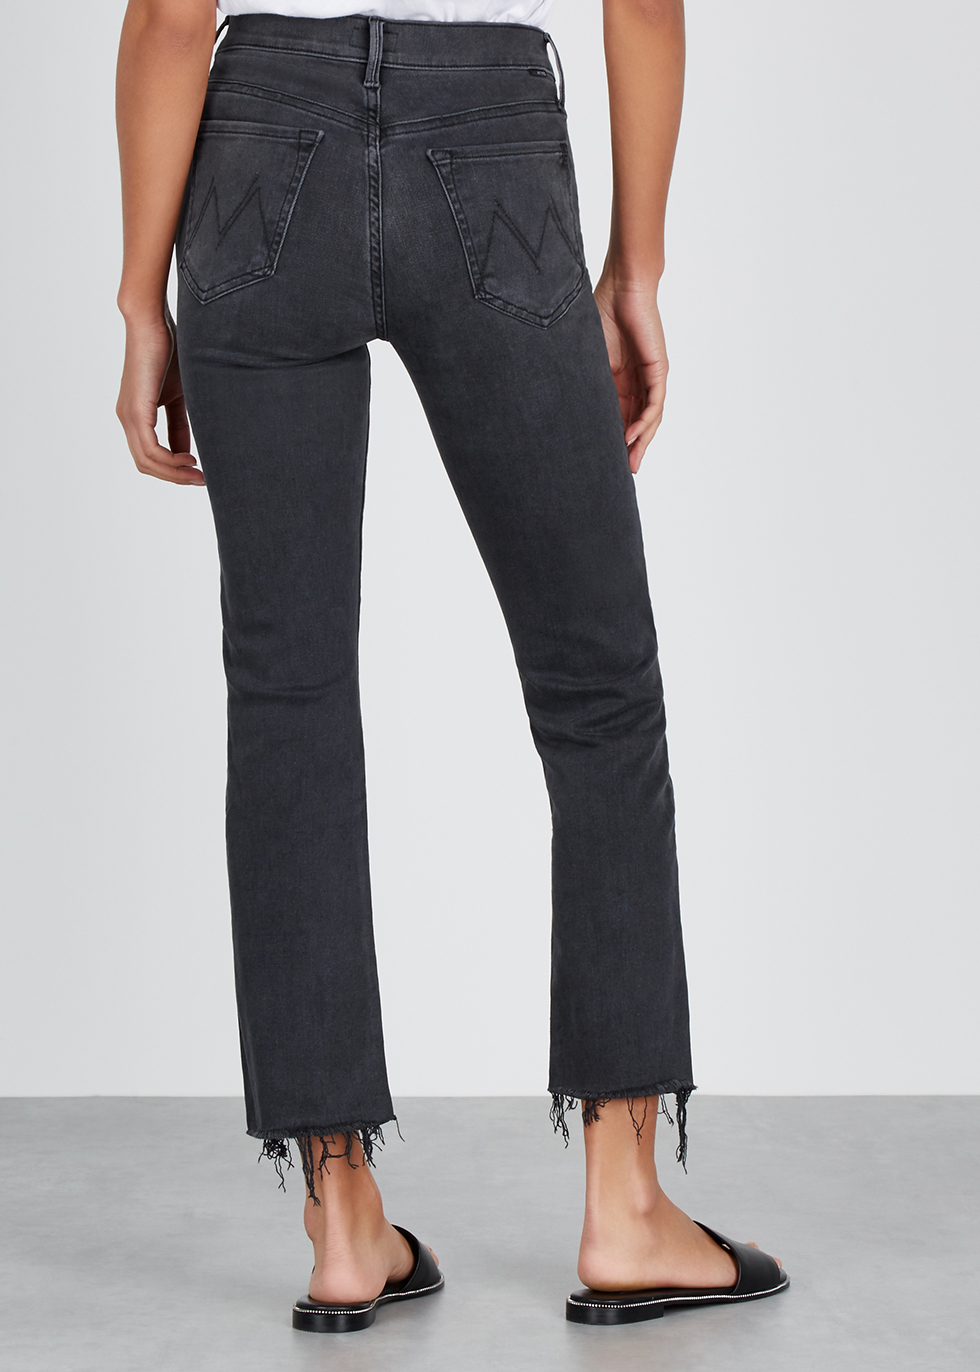 The Rascal Ankle Snippet jeans - Mother